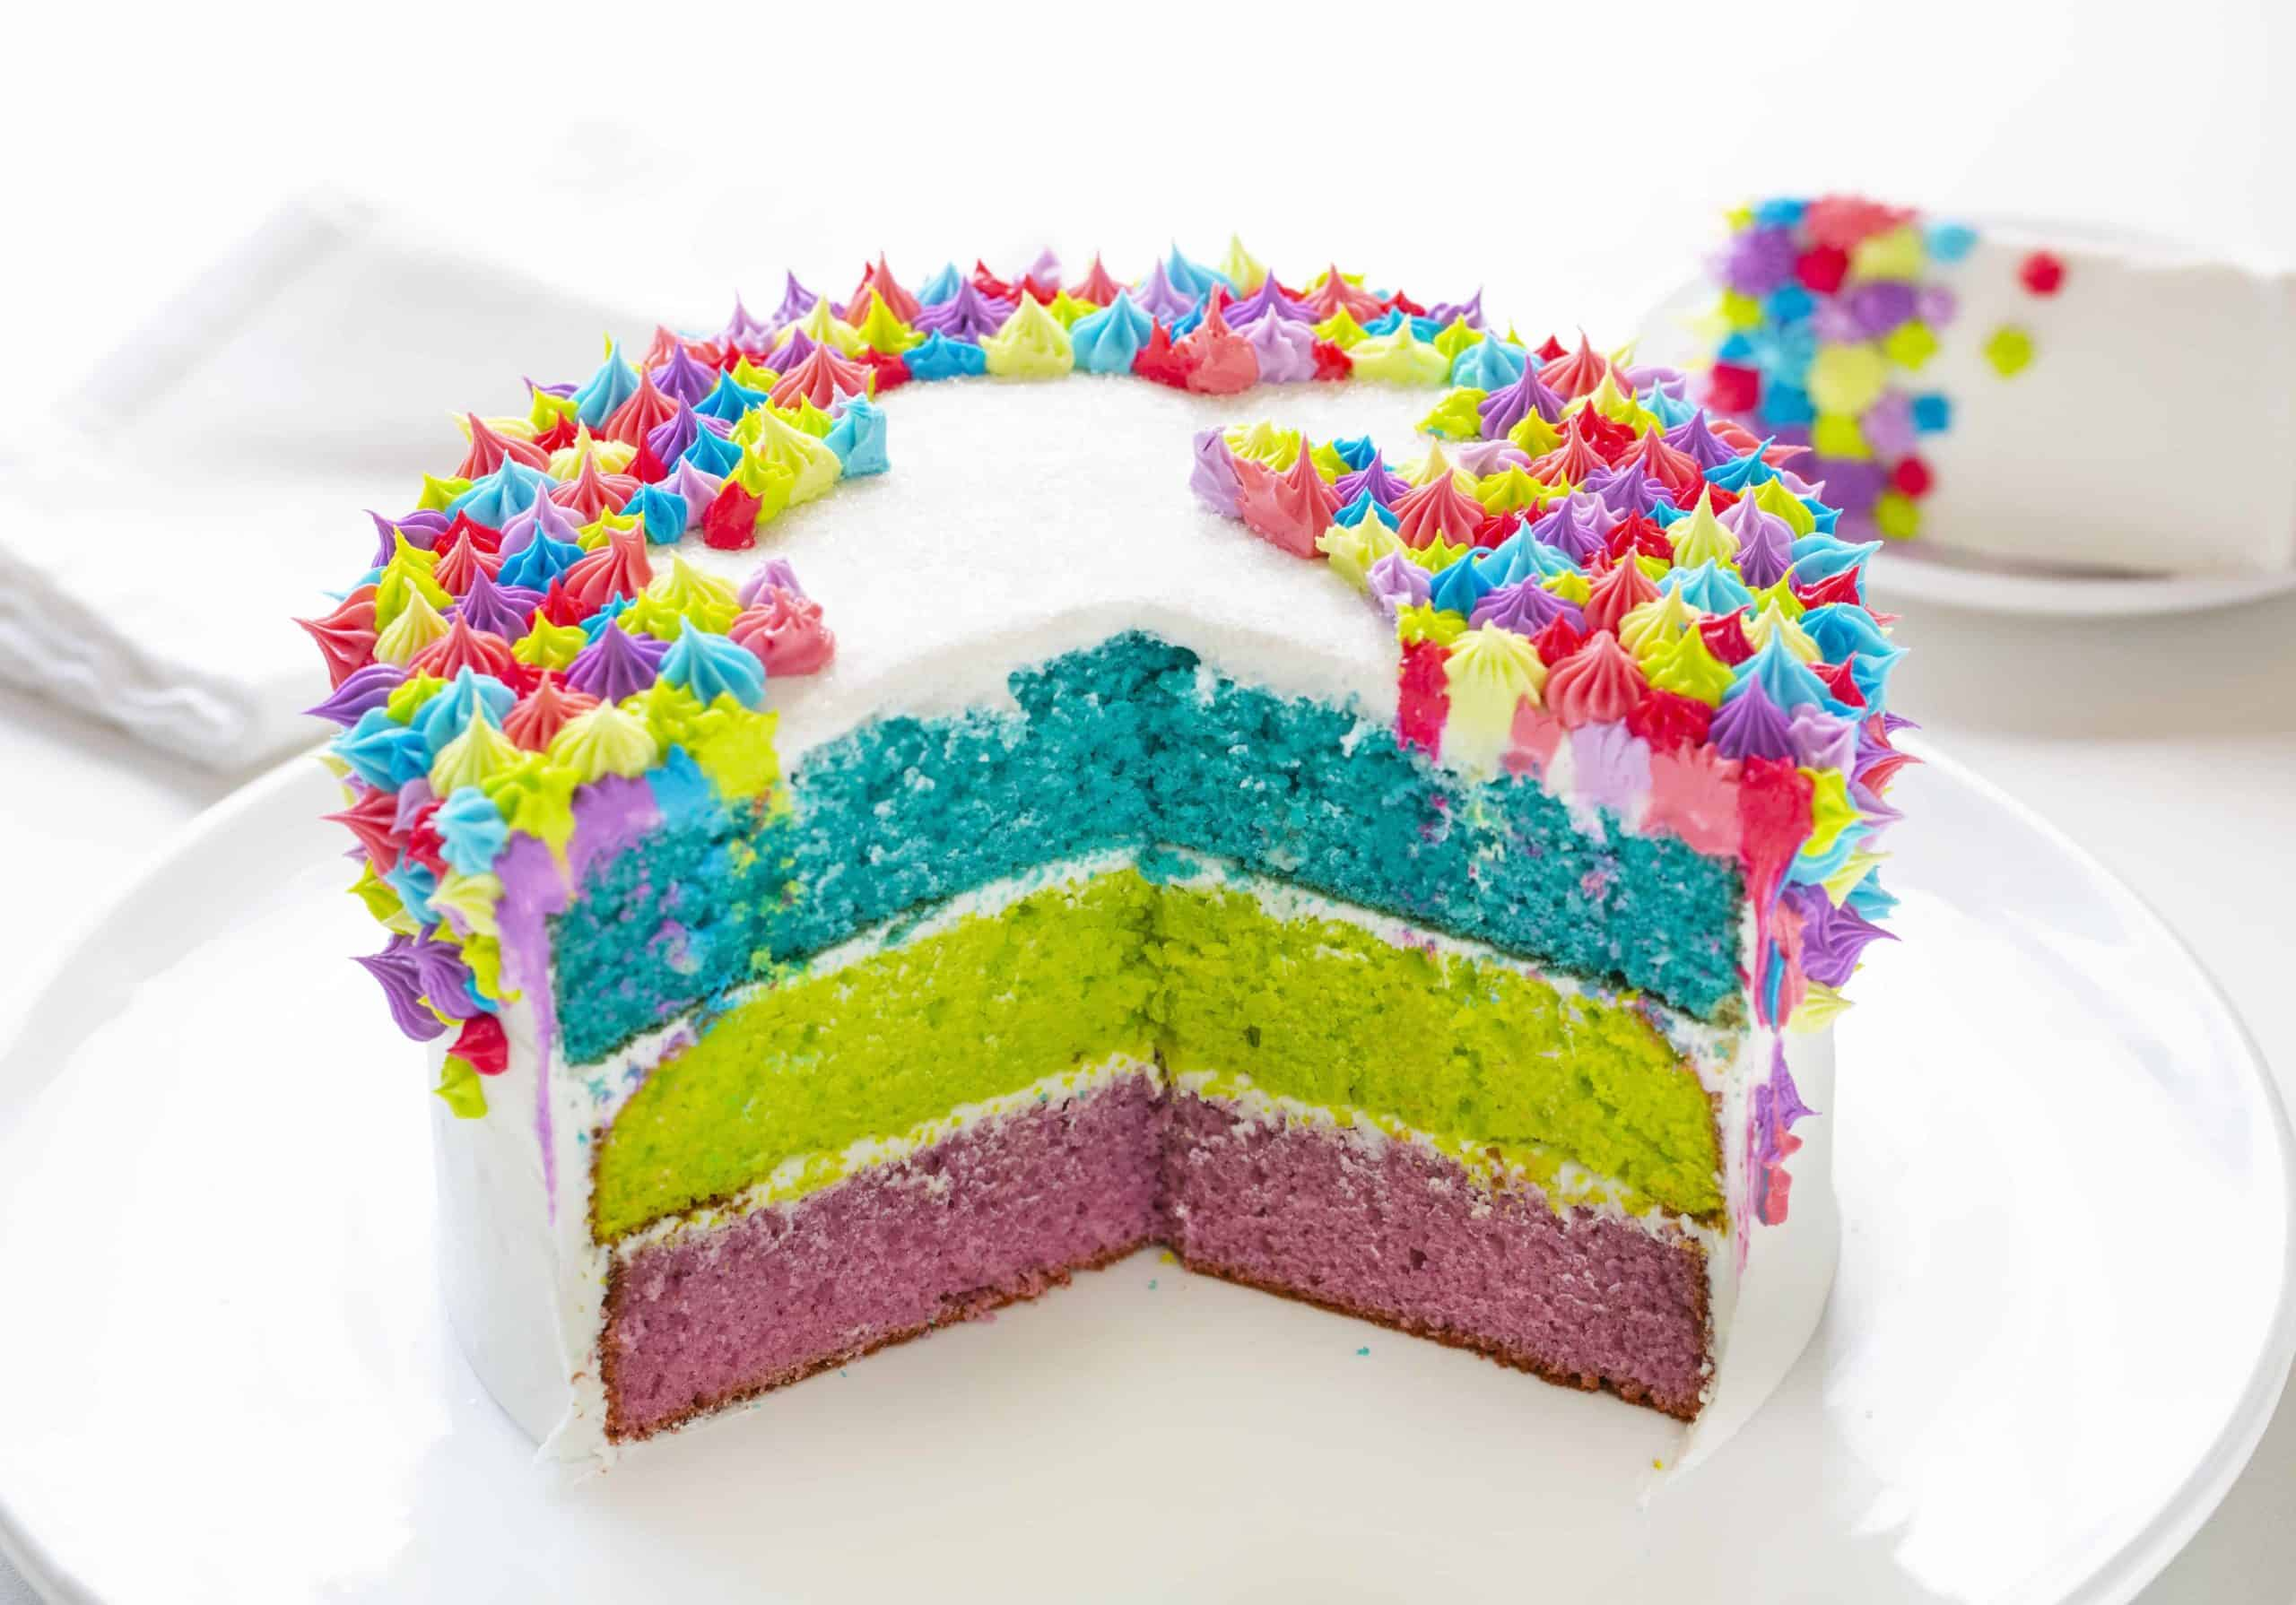 Colorful Bunny Layer Cake